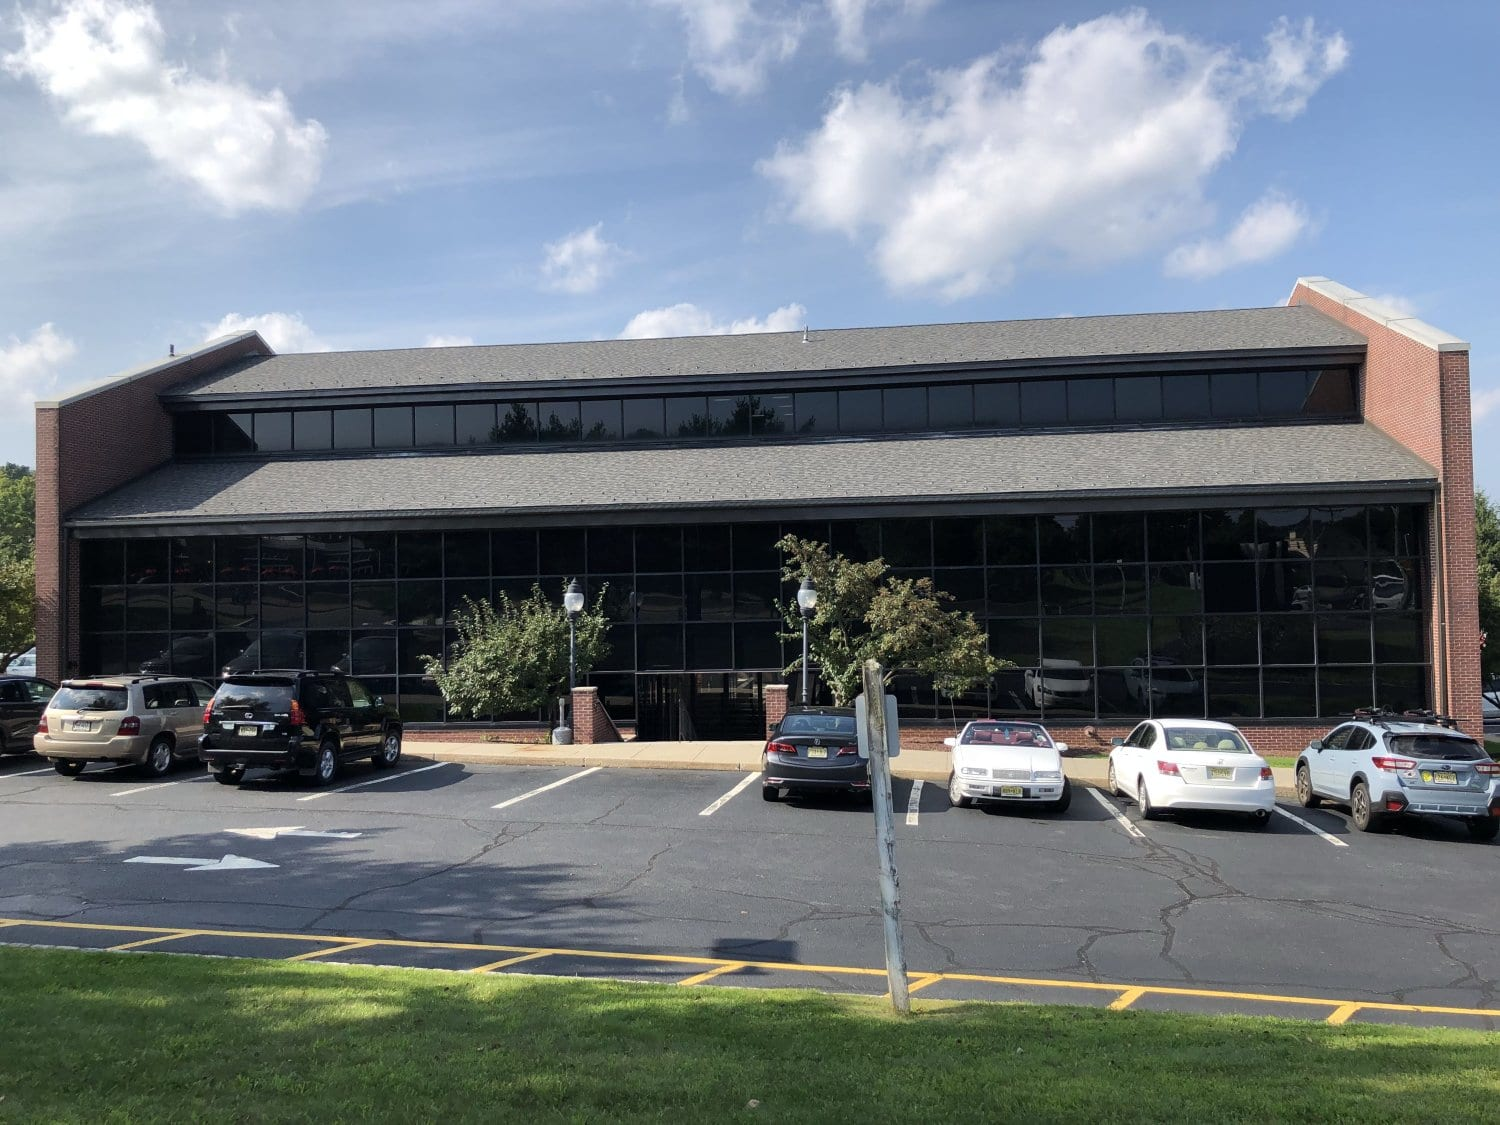 A photo of the building our physical therapy clinic is in. The building is located in Randolph, New Jersey.